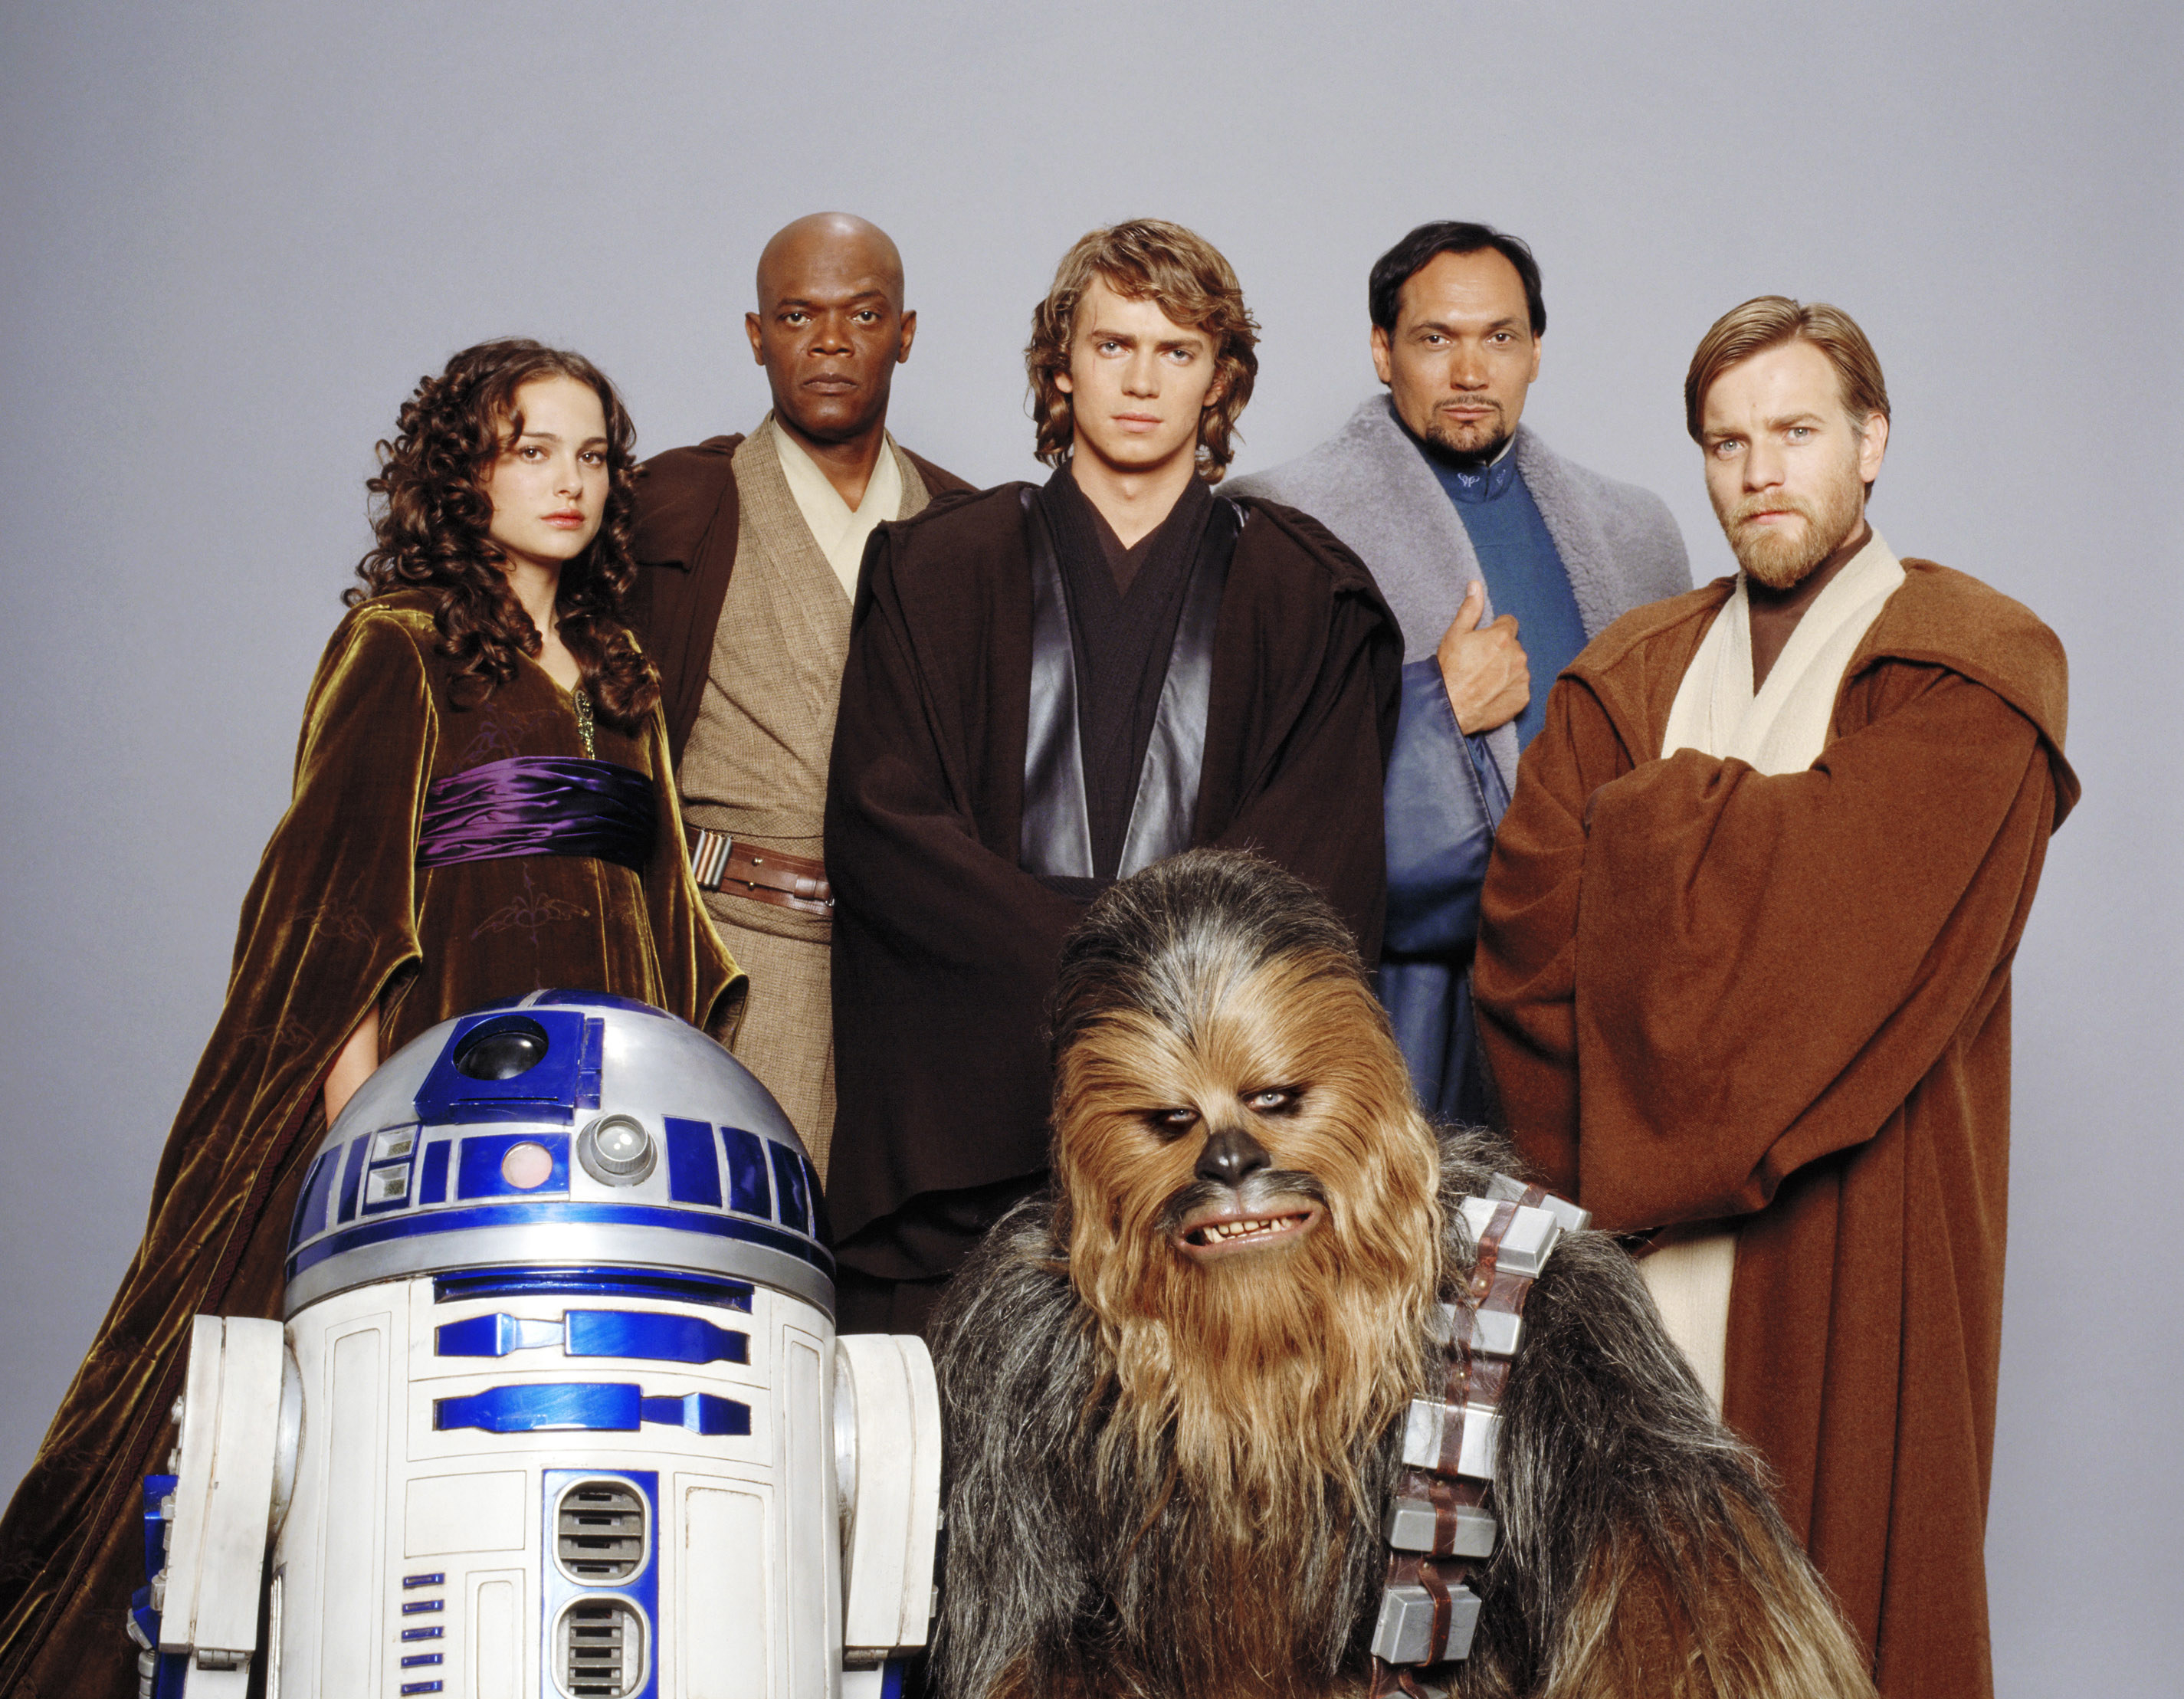 Promotional photo of the Revenge of the Sith cast